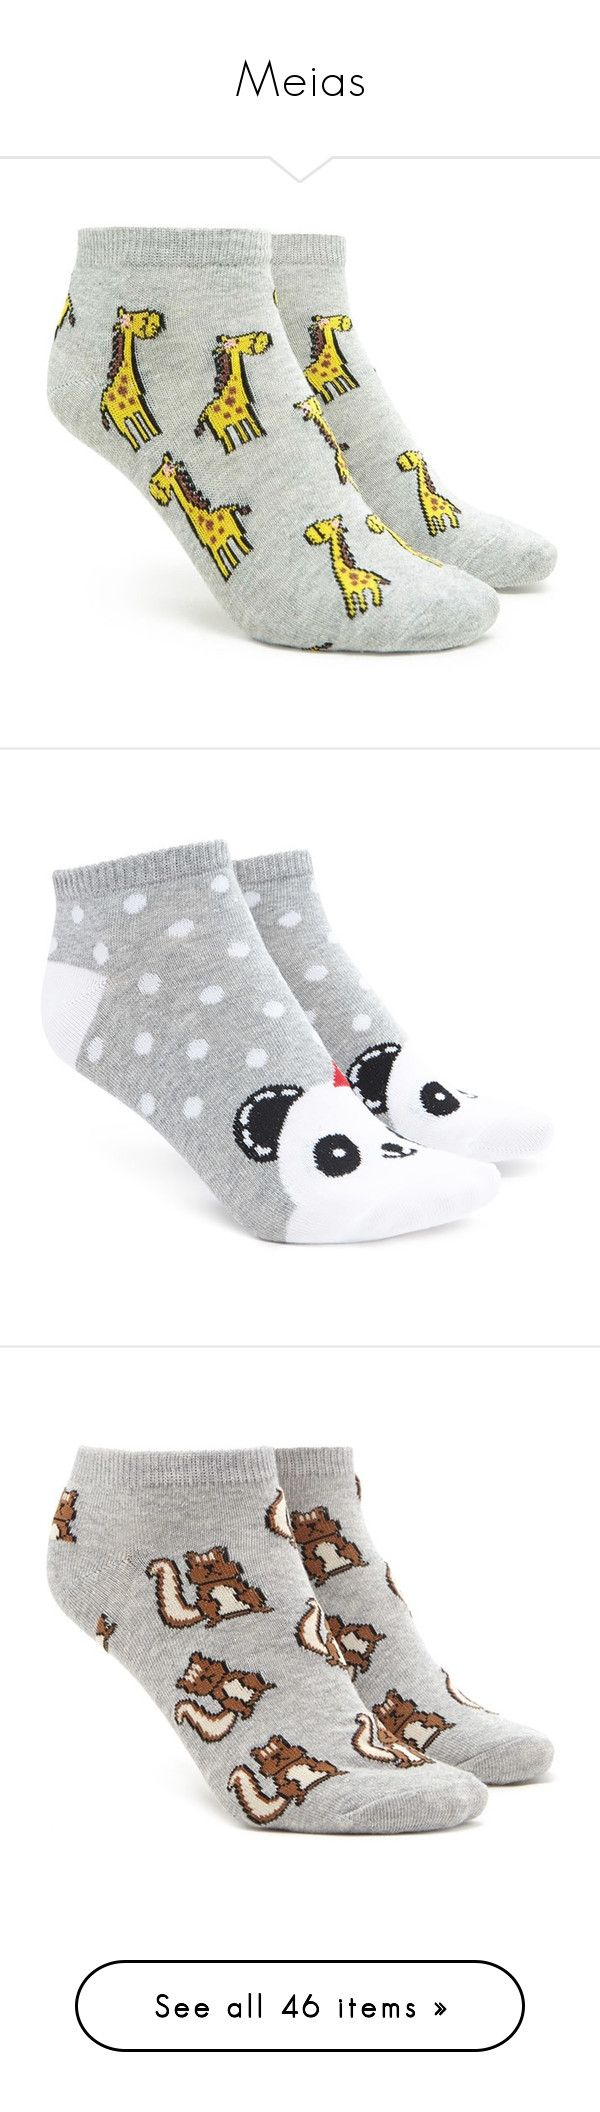 """""""Meias"""" by liviunnie ❤ liked on Polyvore featuring intimates, hosiery, socks, ankle socks, giraffe socks, tennis socks, short socks, giraffe print socks, forever 21 socks and forever 21"""